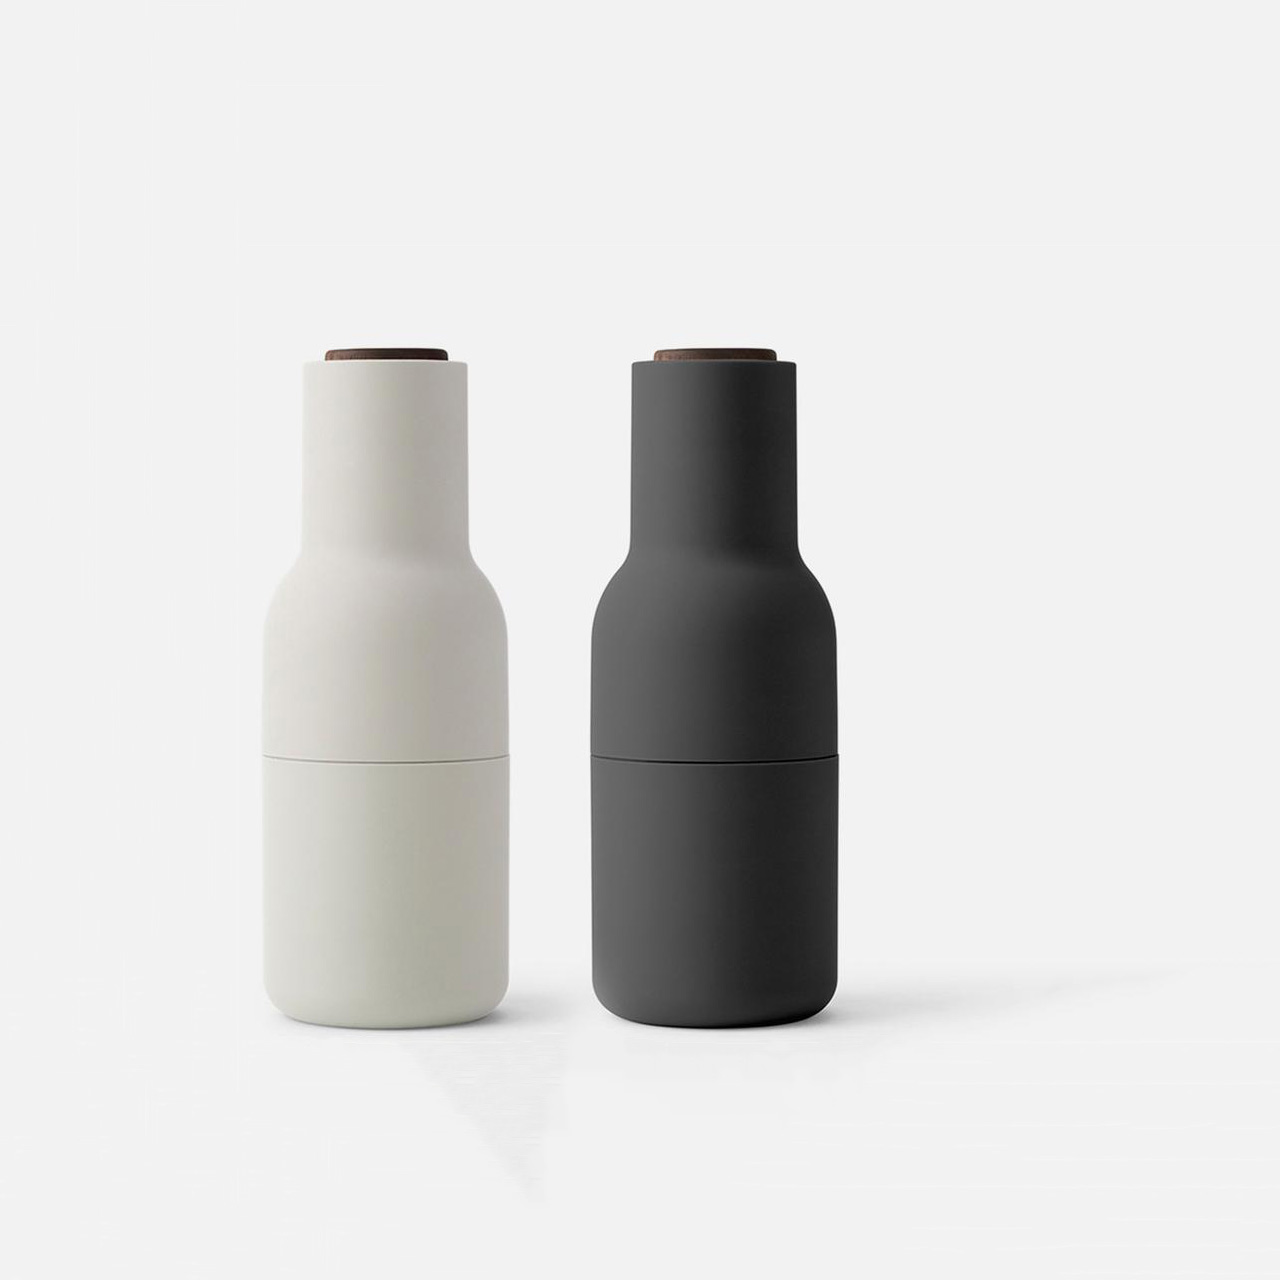 Menu Norm salt & pepper bottle grinder set in carbon/ash/walnut | the design gift shop